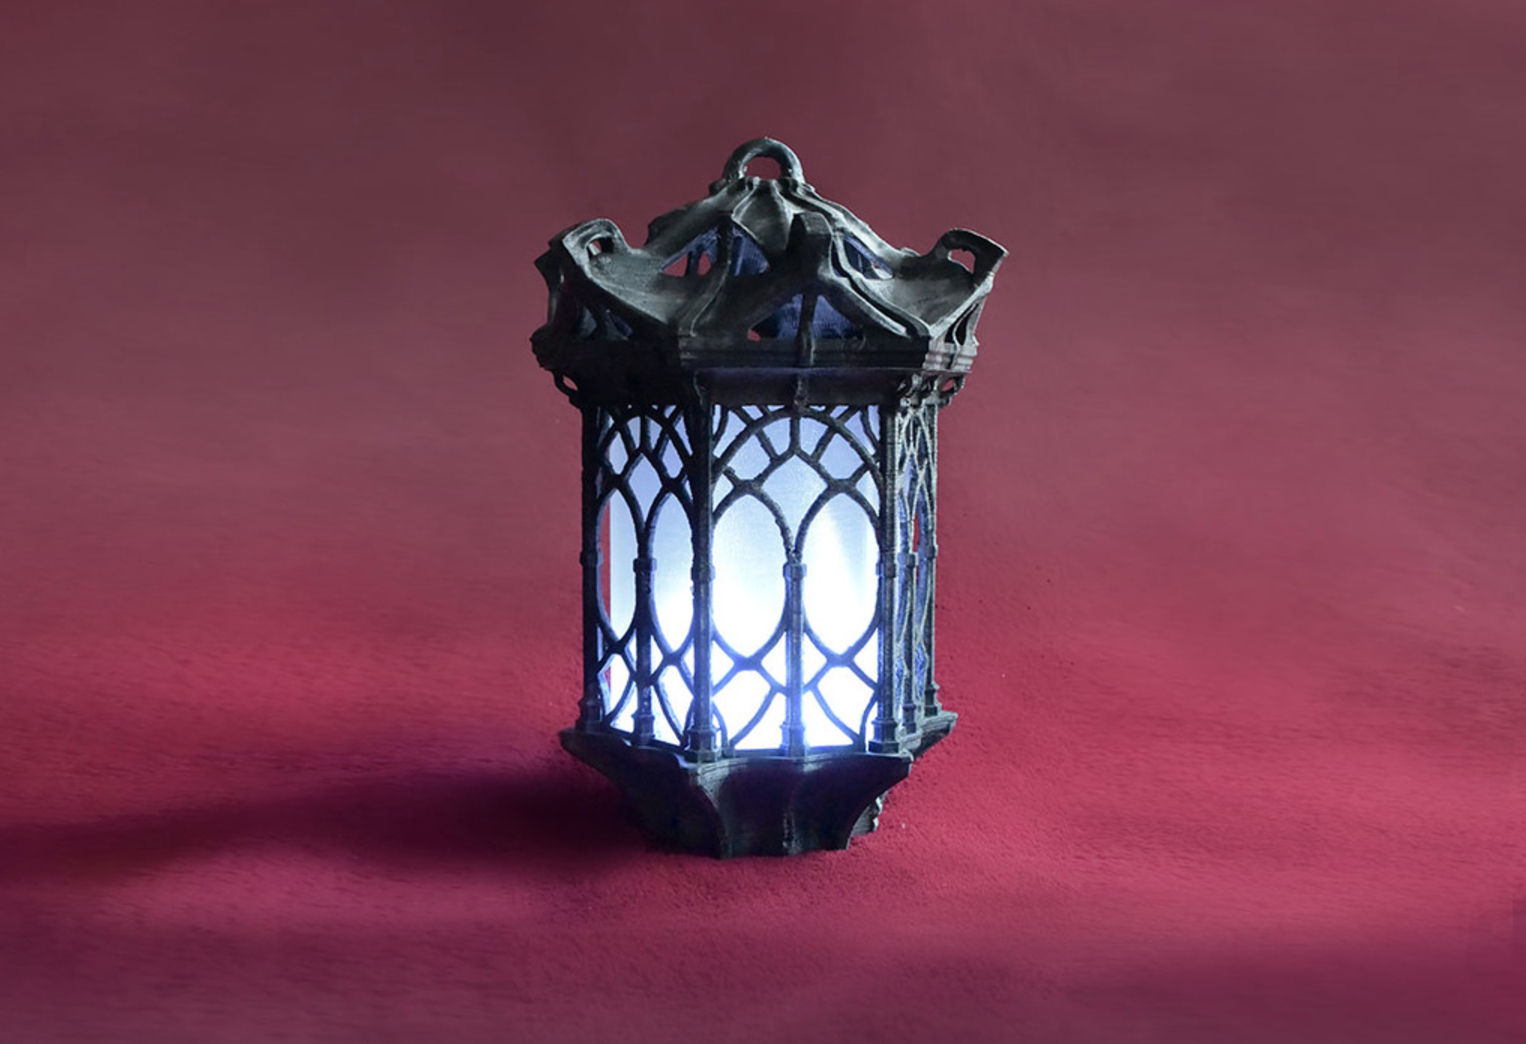 Capture d'écran 2017-06-21 à 14.55.18.png Download free STL file Gothic Lantern • 3D printing model, Shira